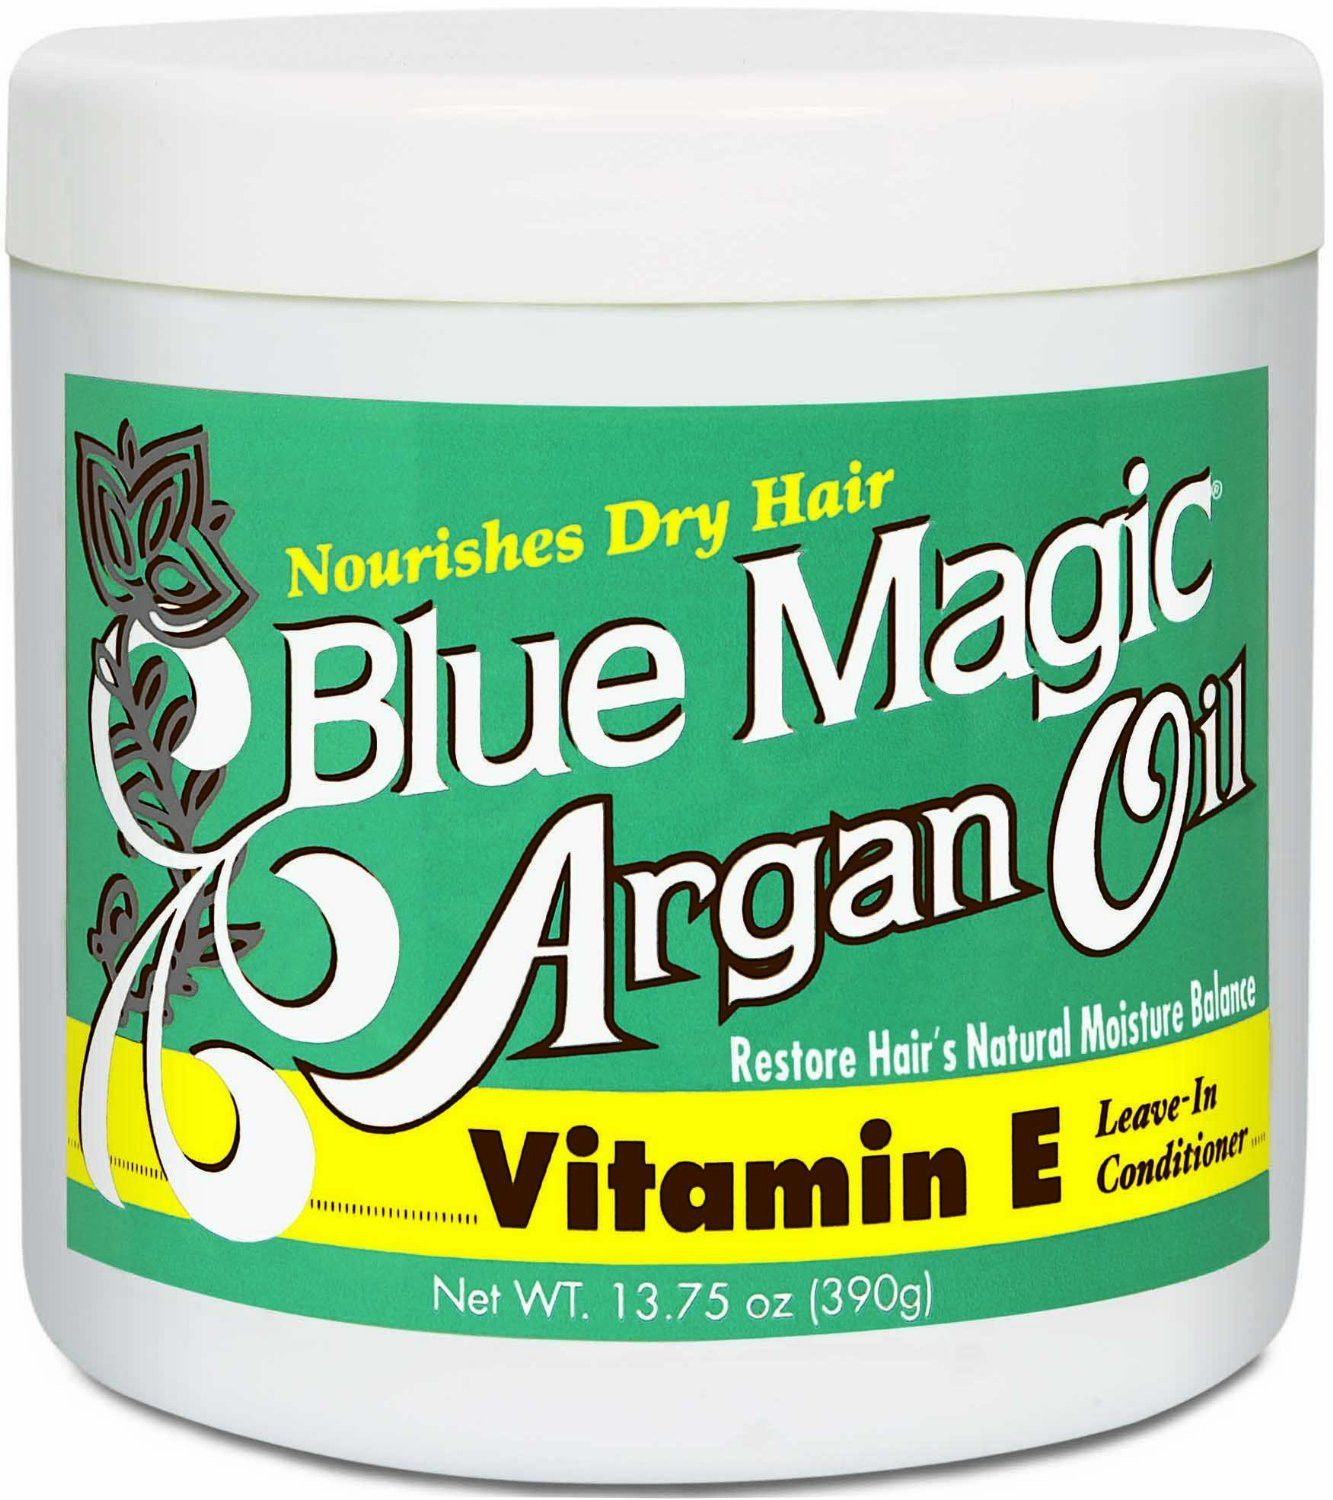 Blue Magic Argan Oil Vitamin E Leave In Conditioner 13 75 Oz